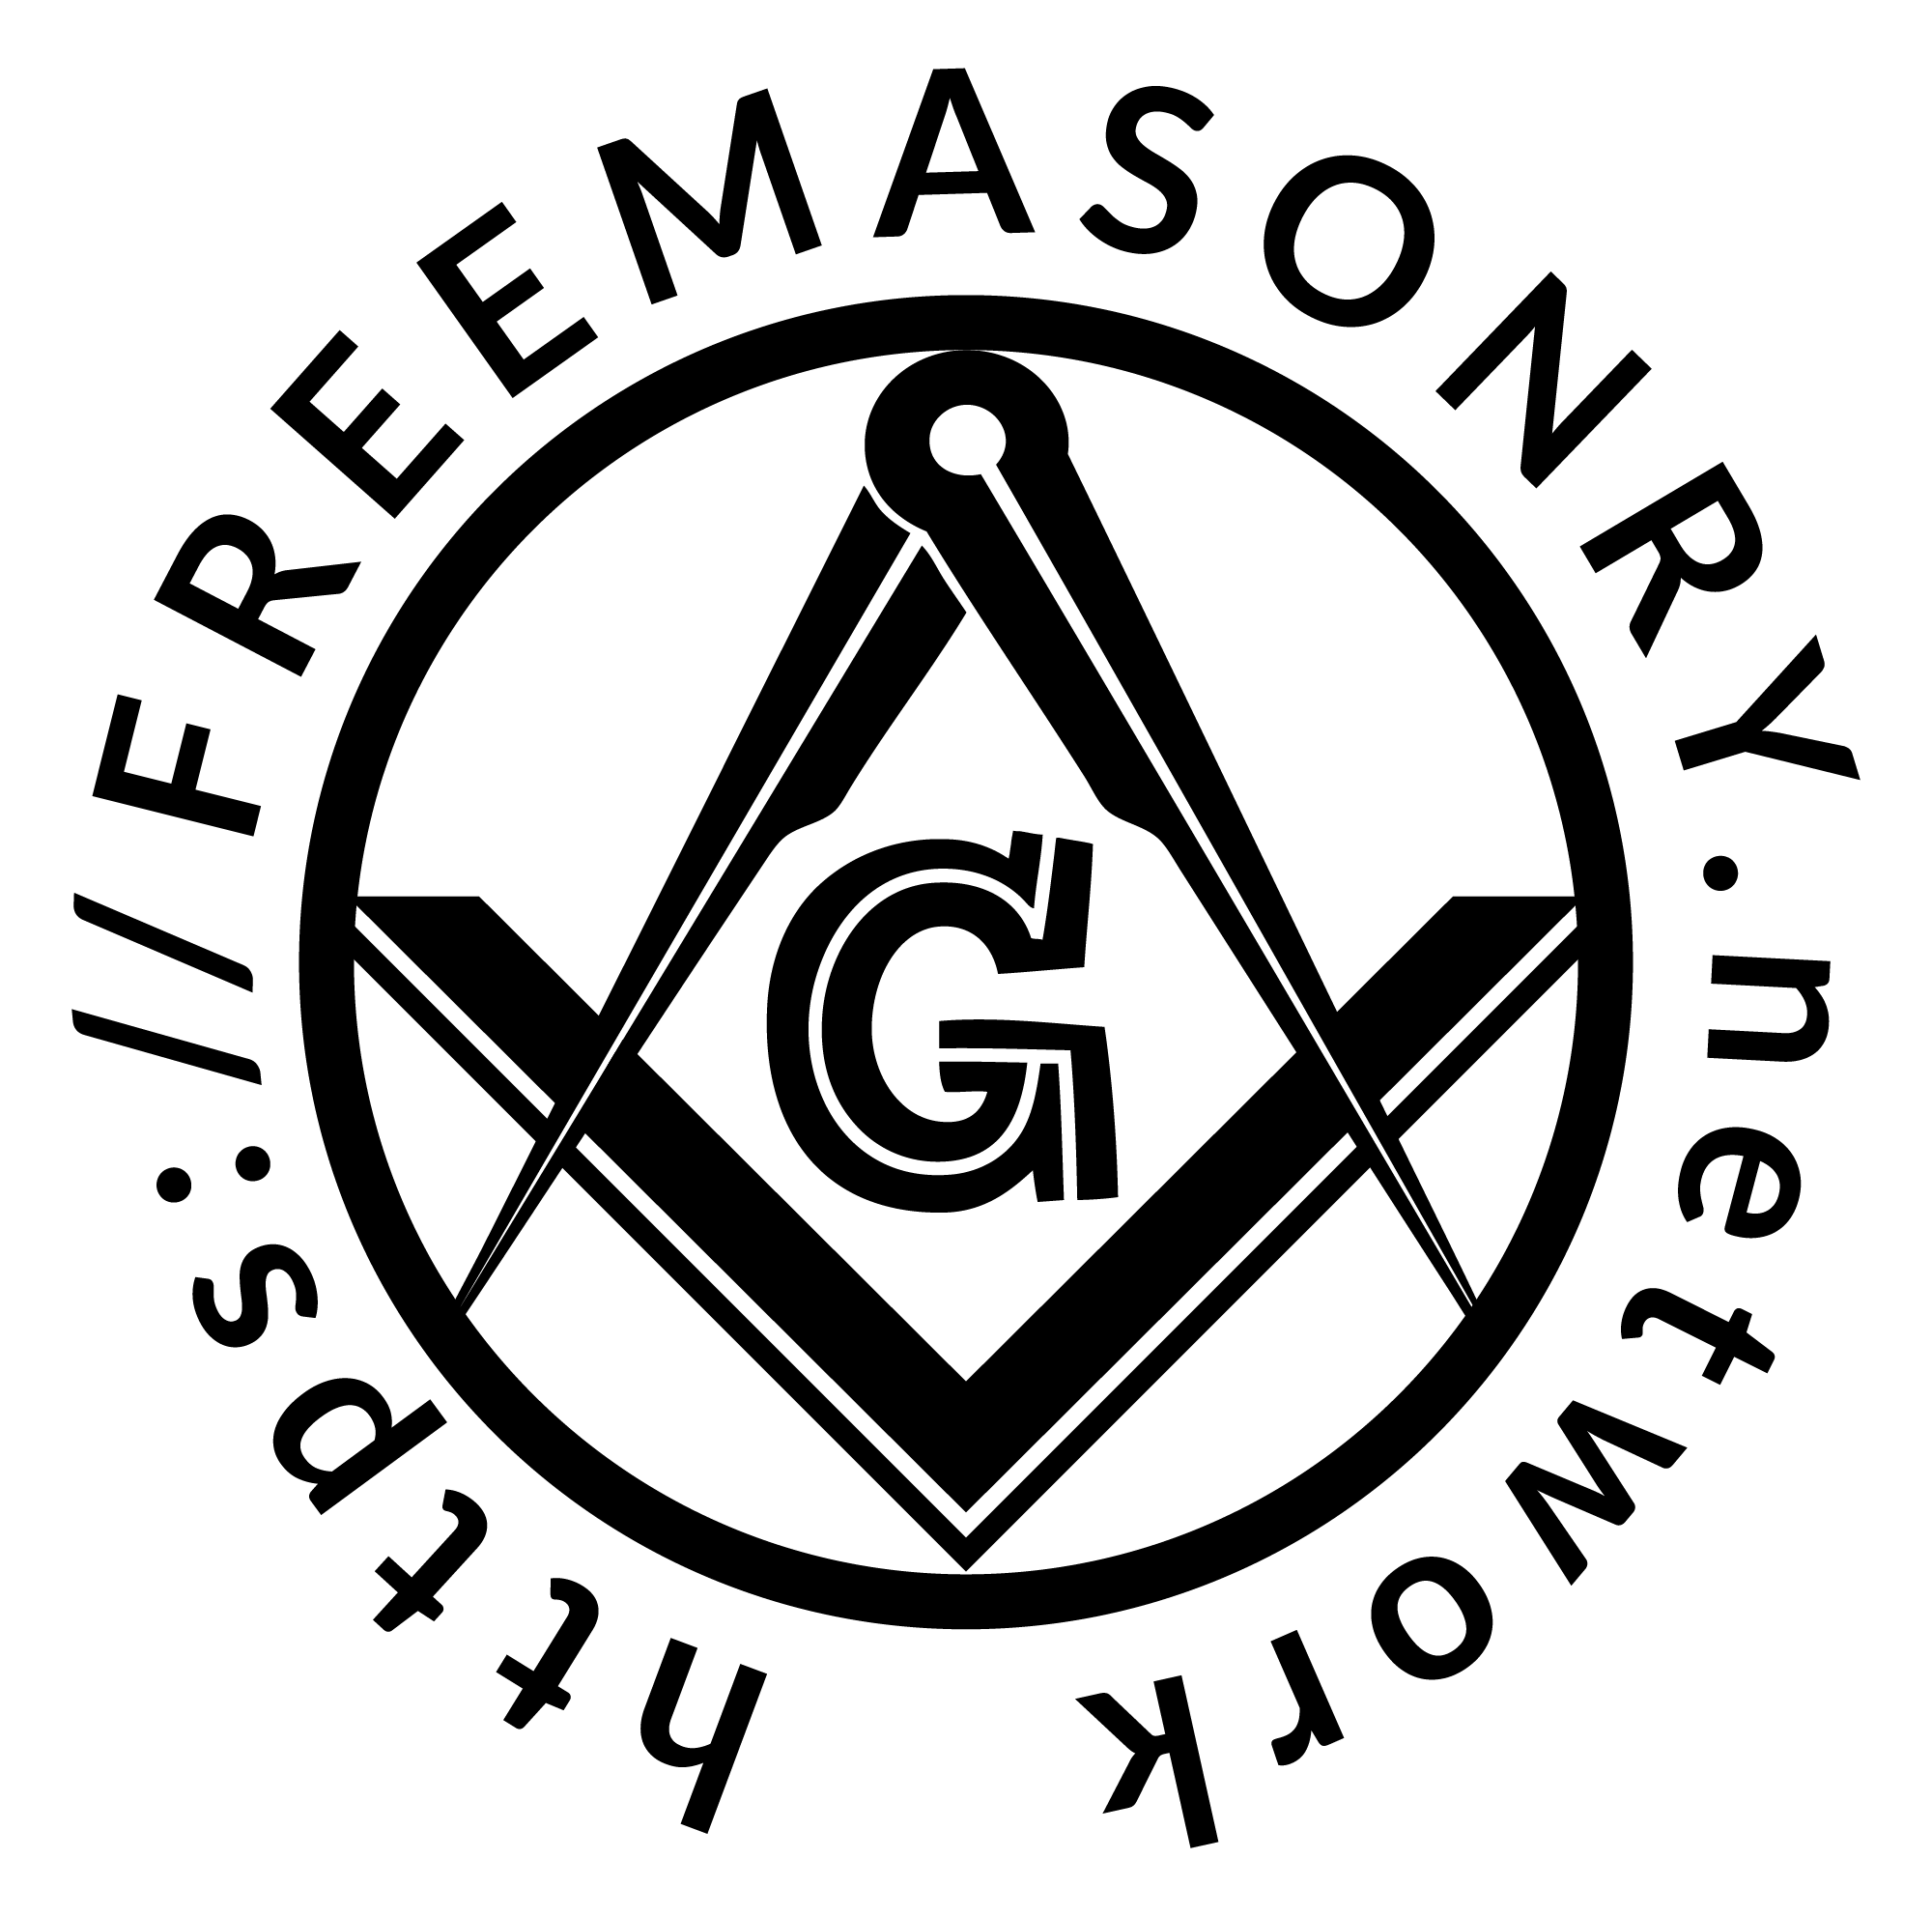 FREEMASONRY IN ECUADOR - Mackey's Encyclopedia of Freemasonry